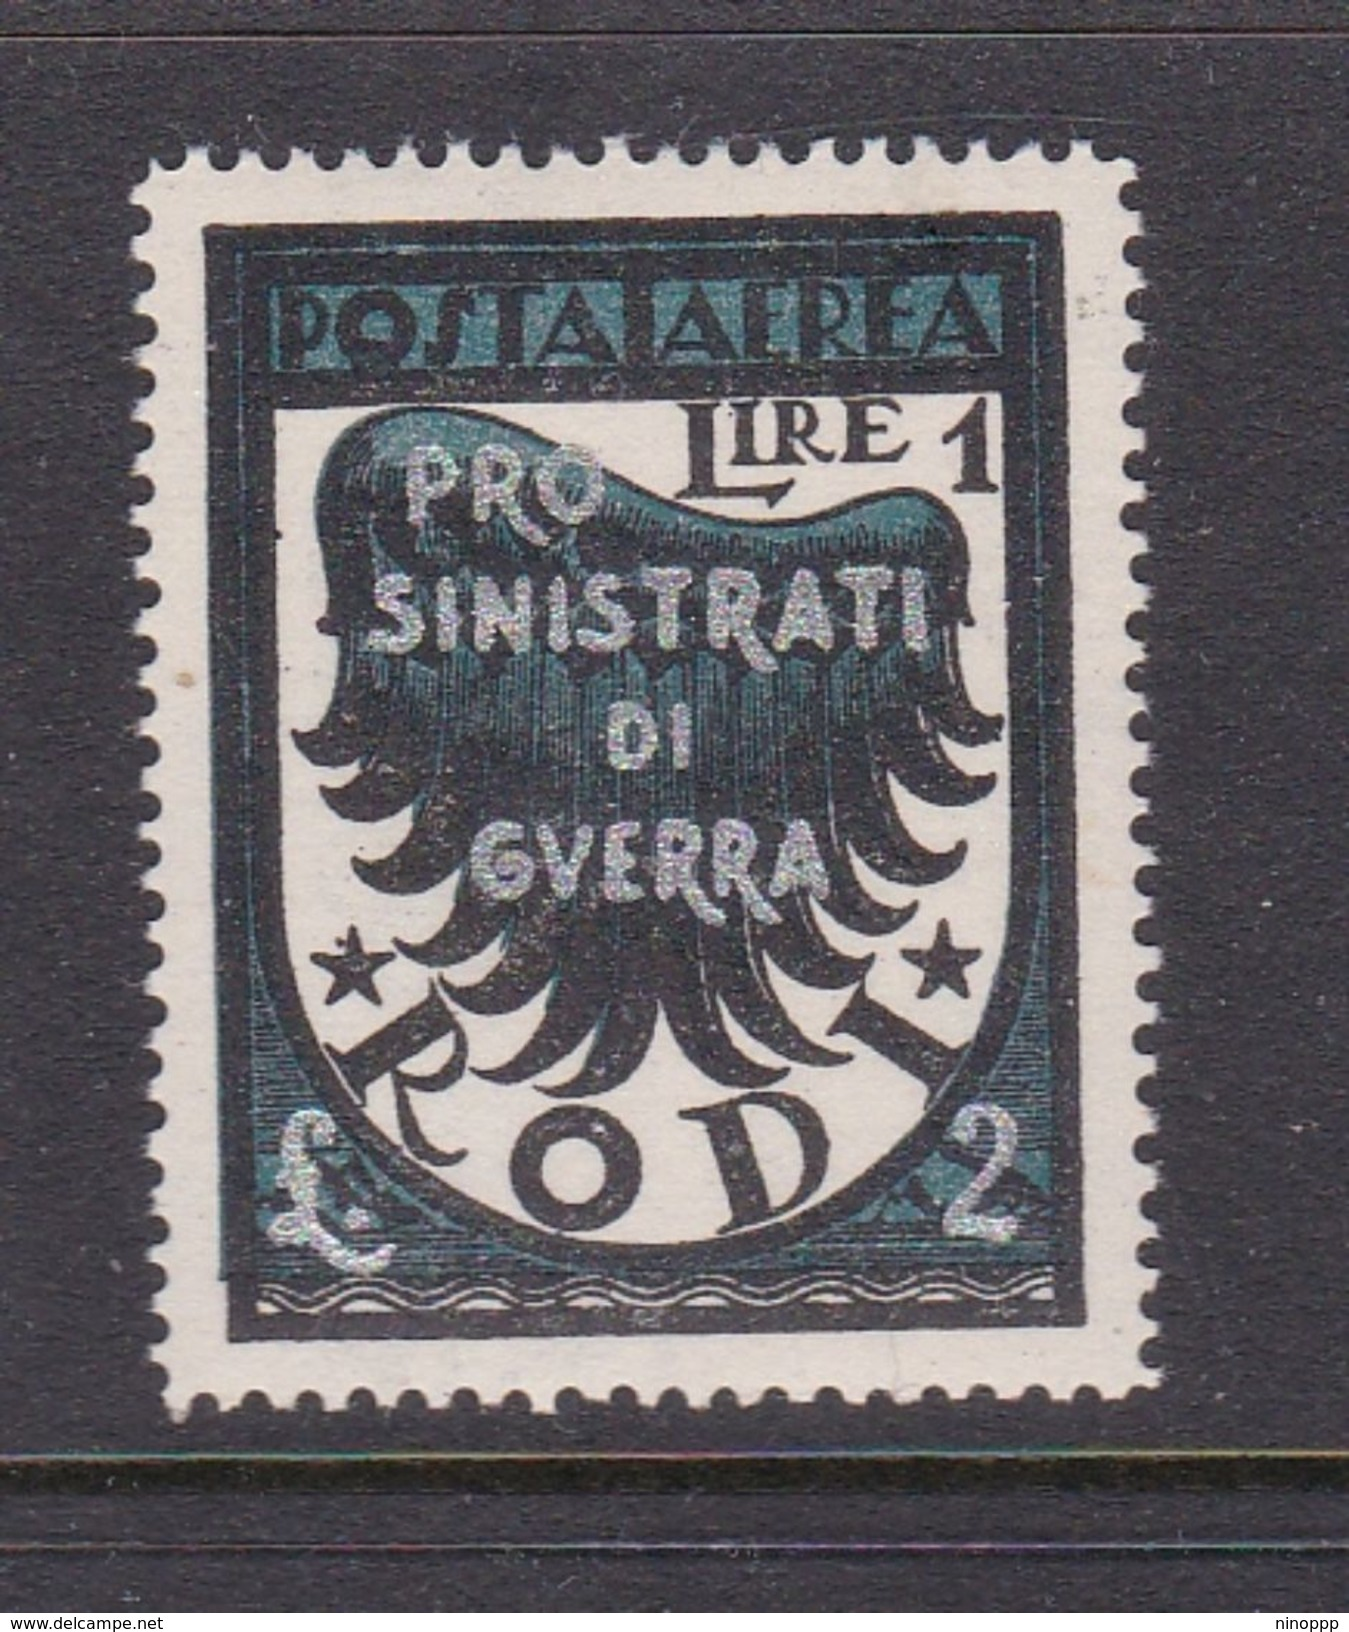 Italy-Colonies And Territories-Aegean General Issue-Rodi A 58 1944 Air Mail  Wing Pro War Victims 1 Lira + 2 Lire Black - Italy